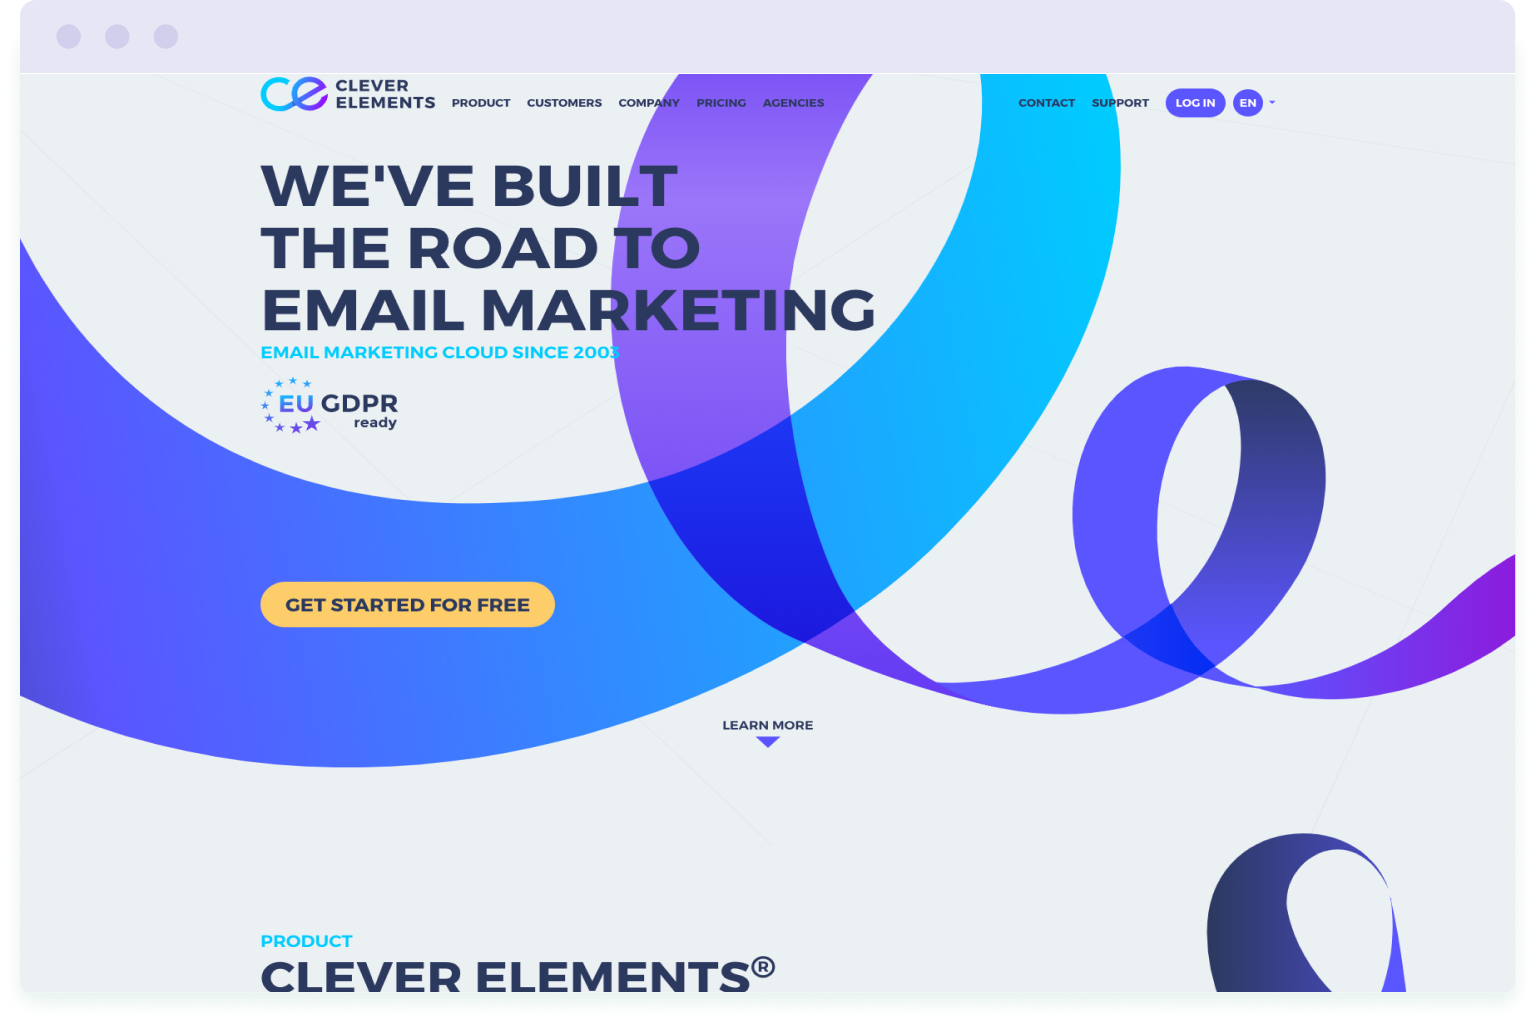 Image of the website homepage of Clever Elements, a cheaper alternative to Mailchimp